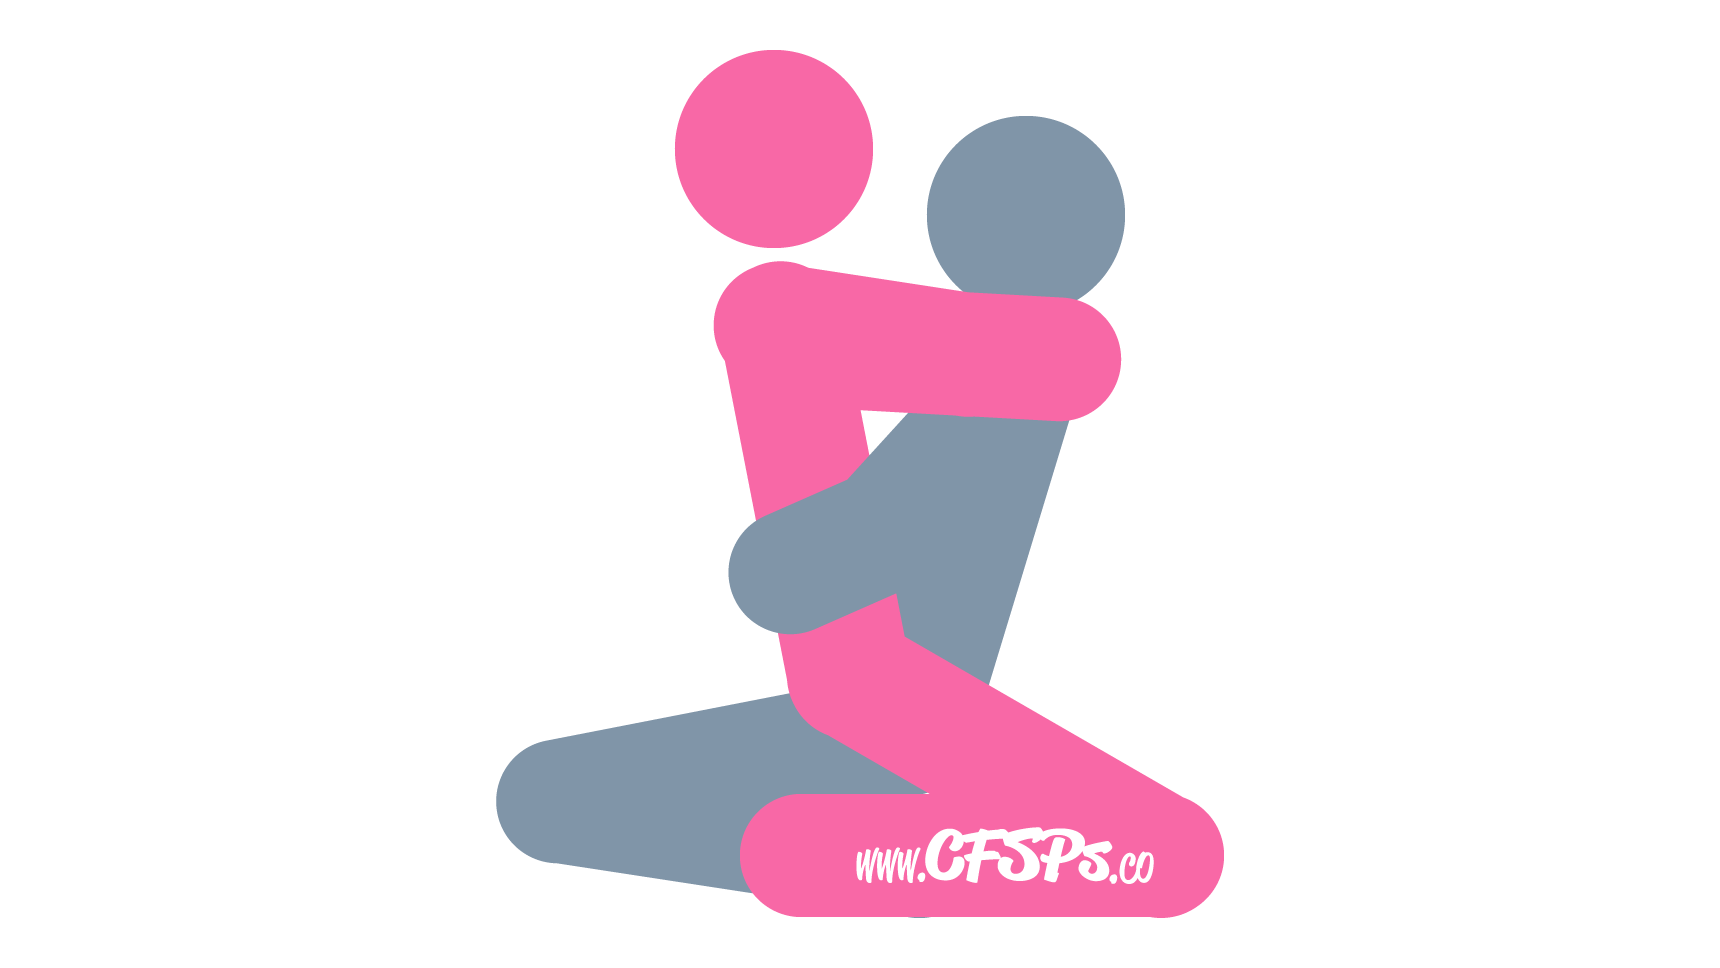 An illustration of the Oh, My! sex position. This picture demonstrates how Oh, My! is an intimate, kneeling sex position with depth control for the woman.